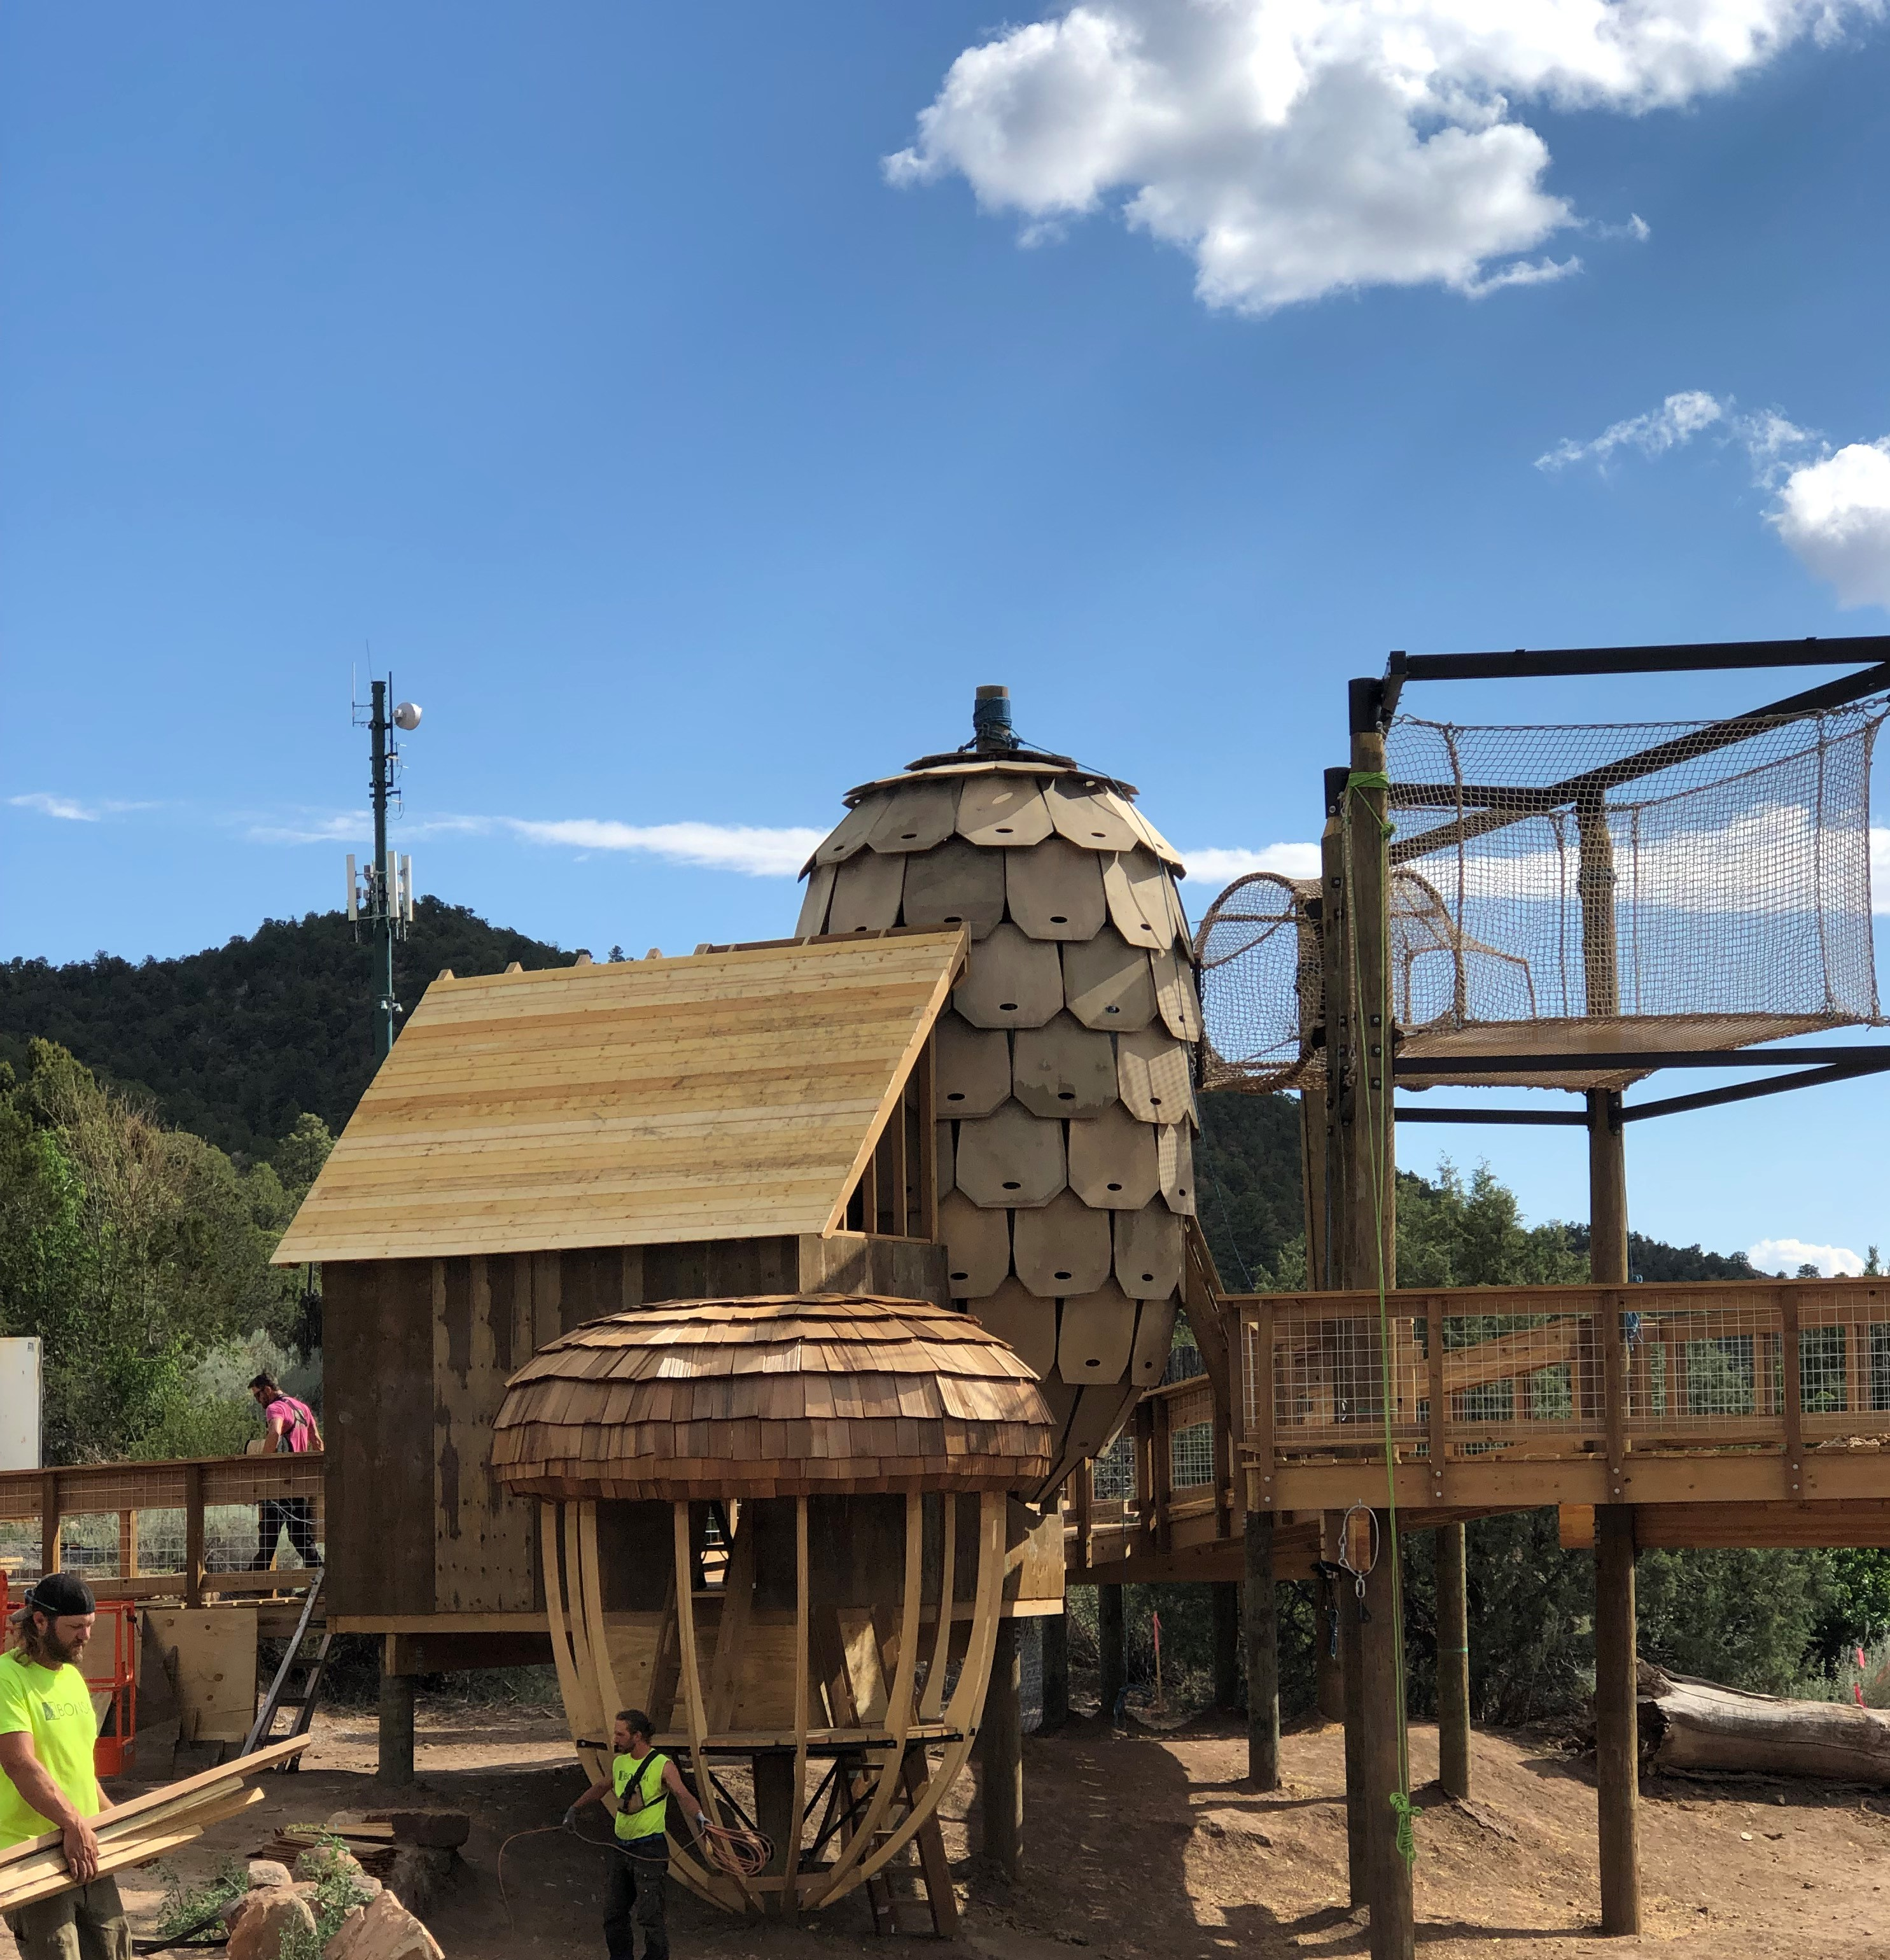 Treehouse under construction